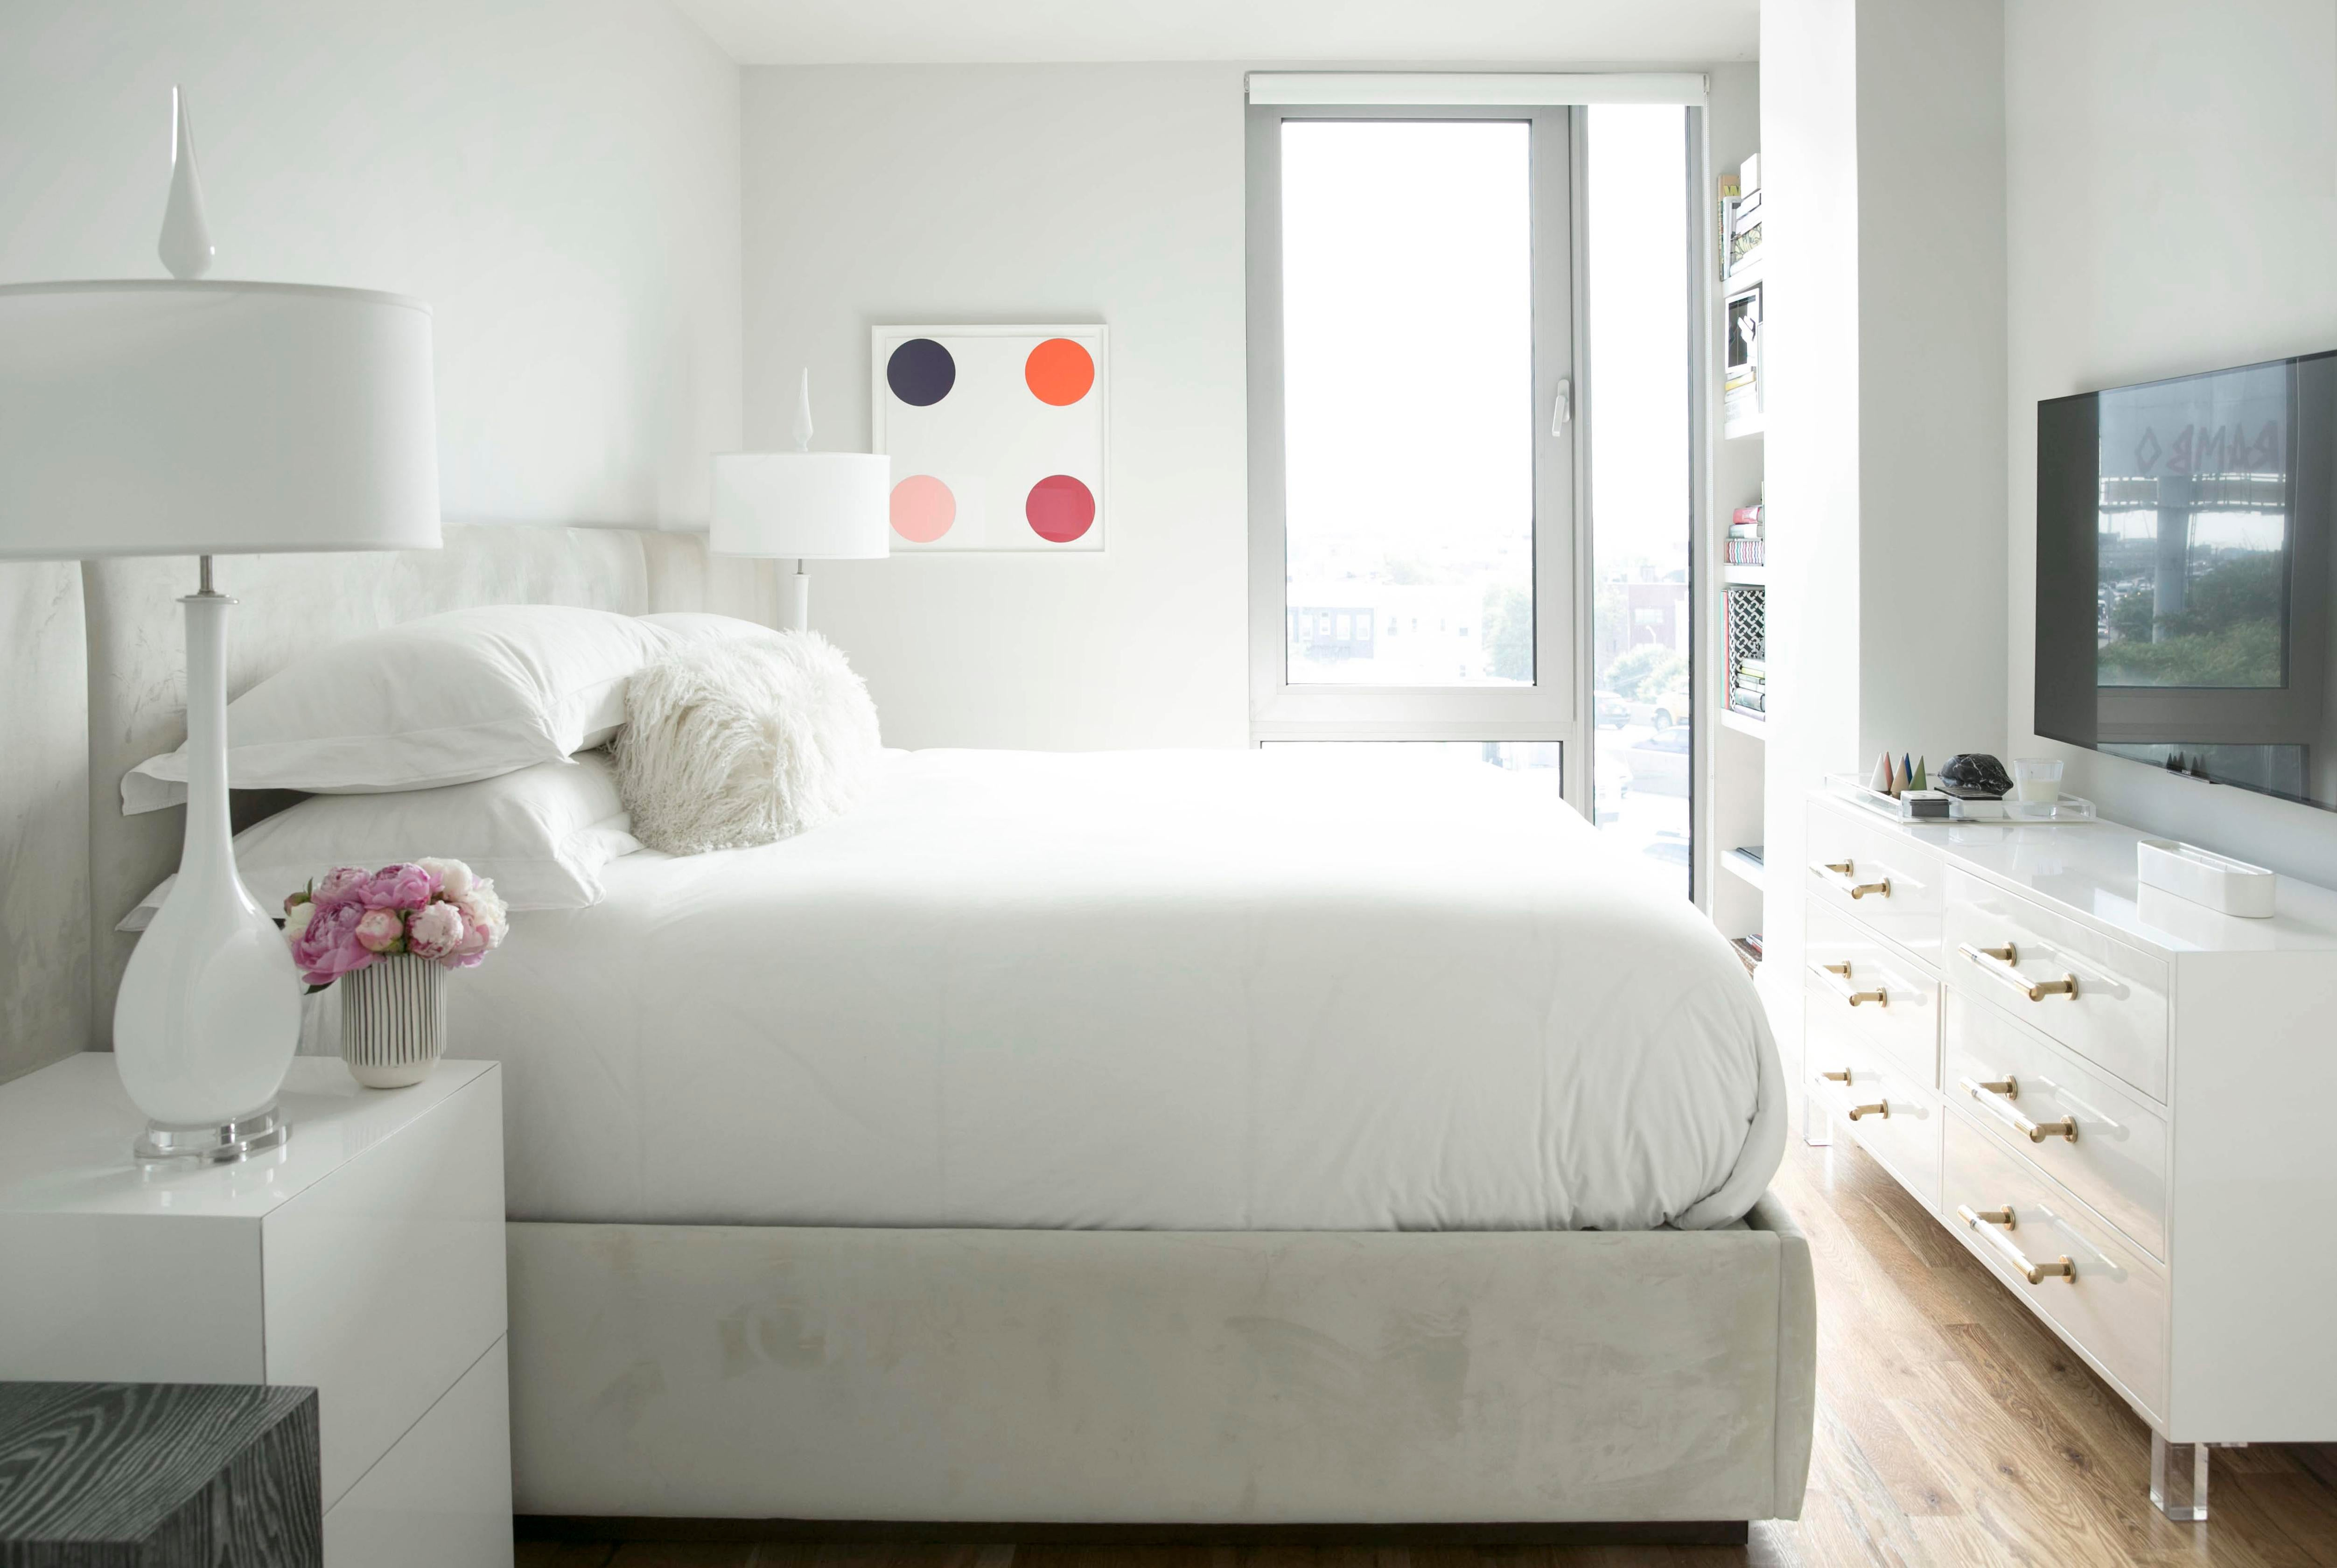 WILLIMABURG BROOKLYN, MASTER BEDROOM Bedroom Contemporary Modern Eclectic  By Cara Woodhouse Interiors LLC